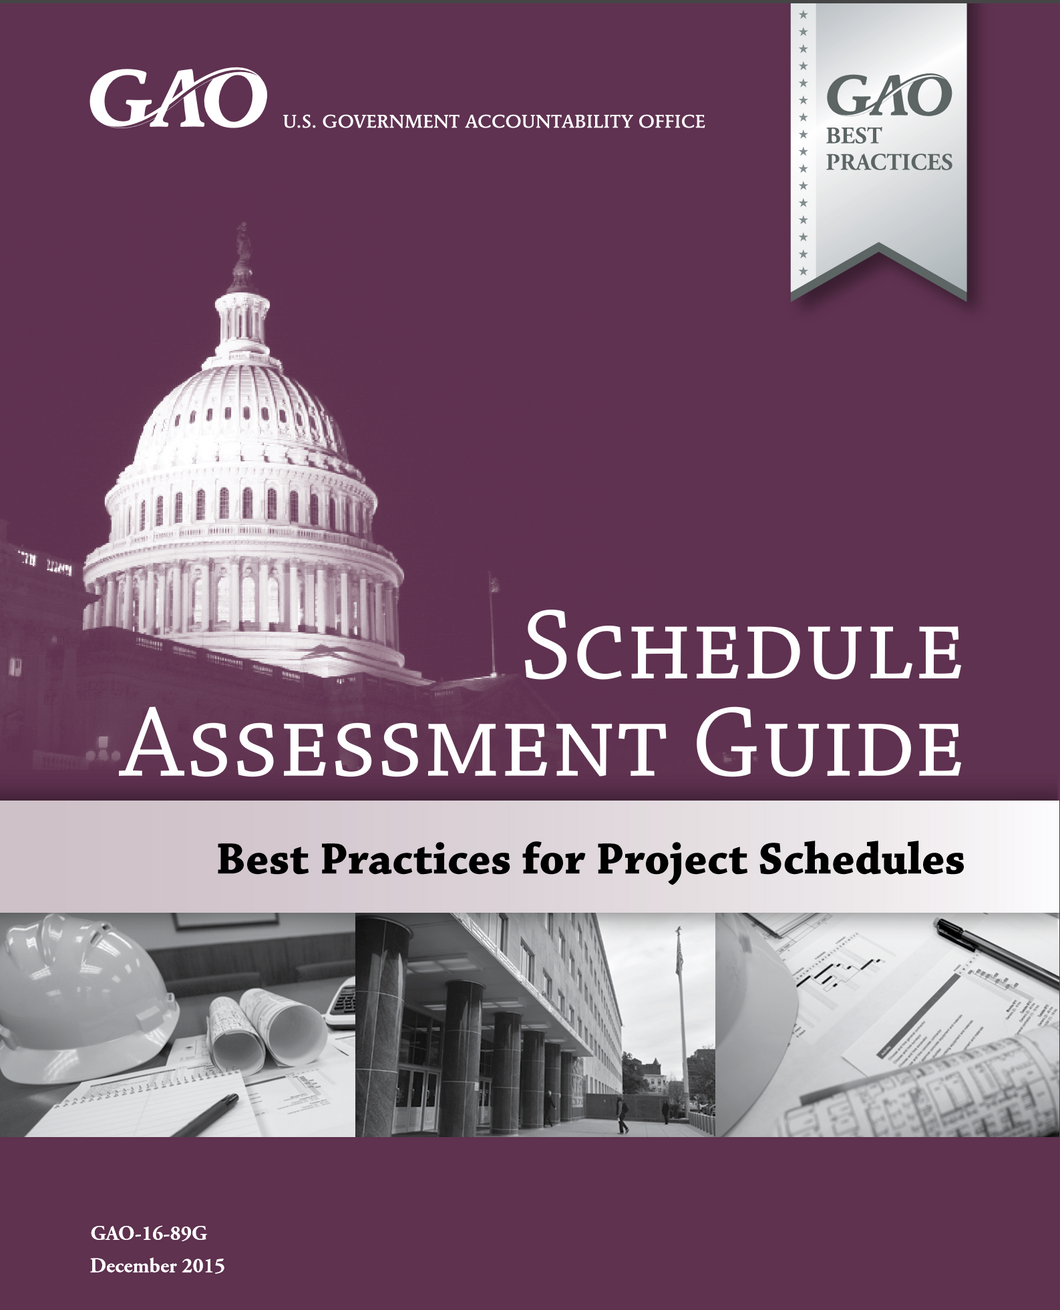 The Schedule Assessment Guide from GAO (General Accountability Office) in USA - article